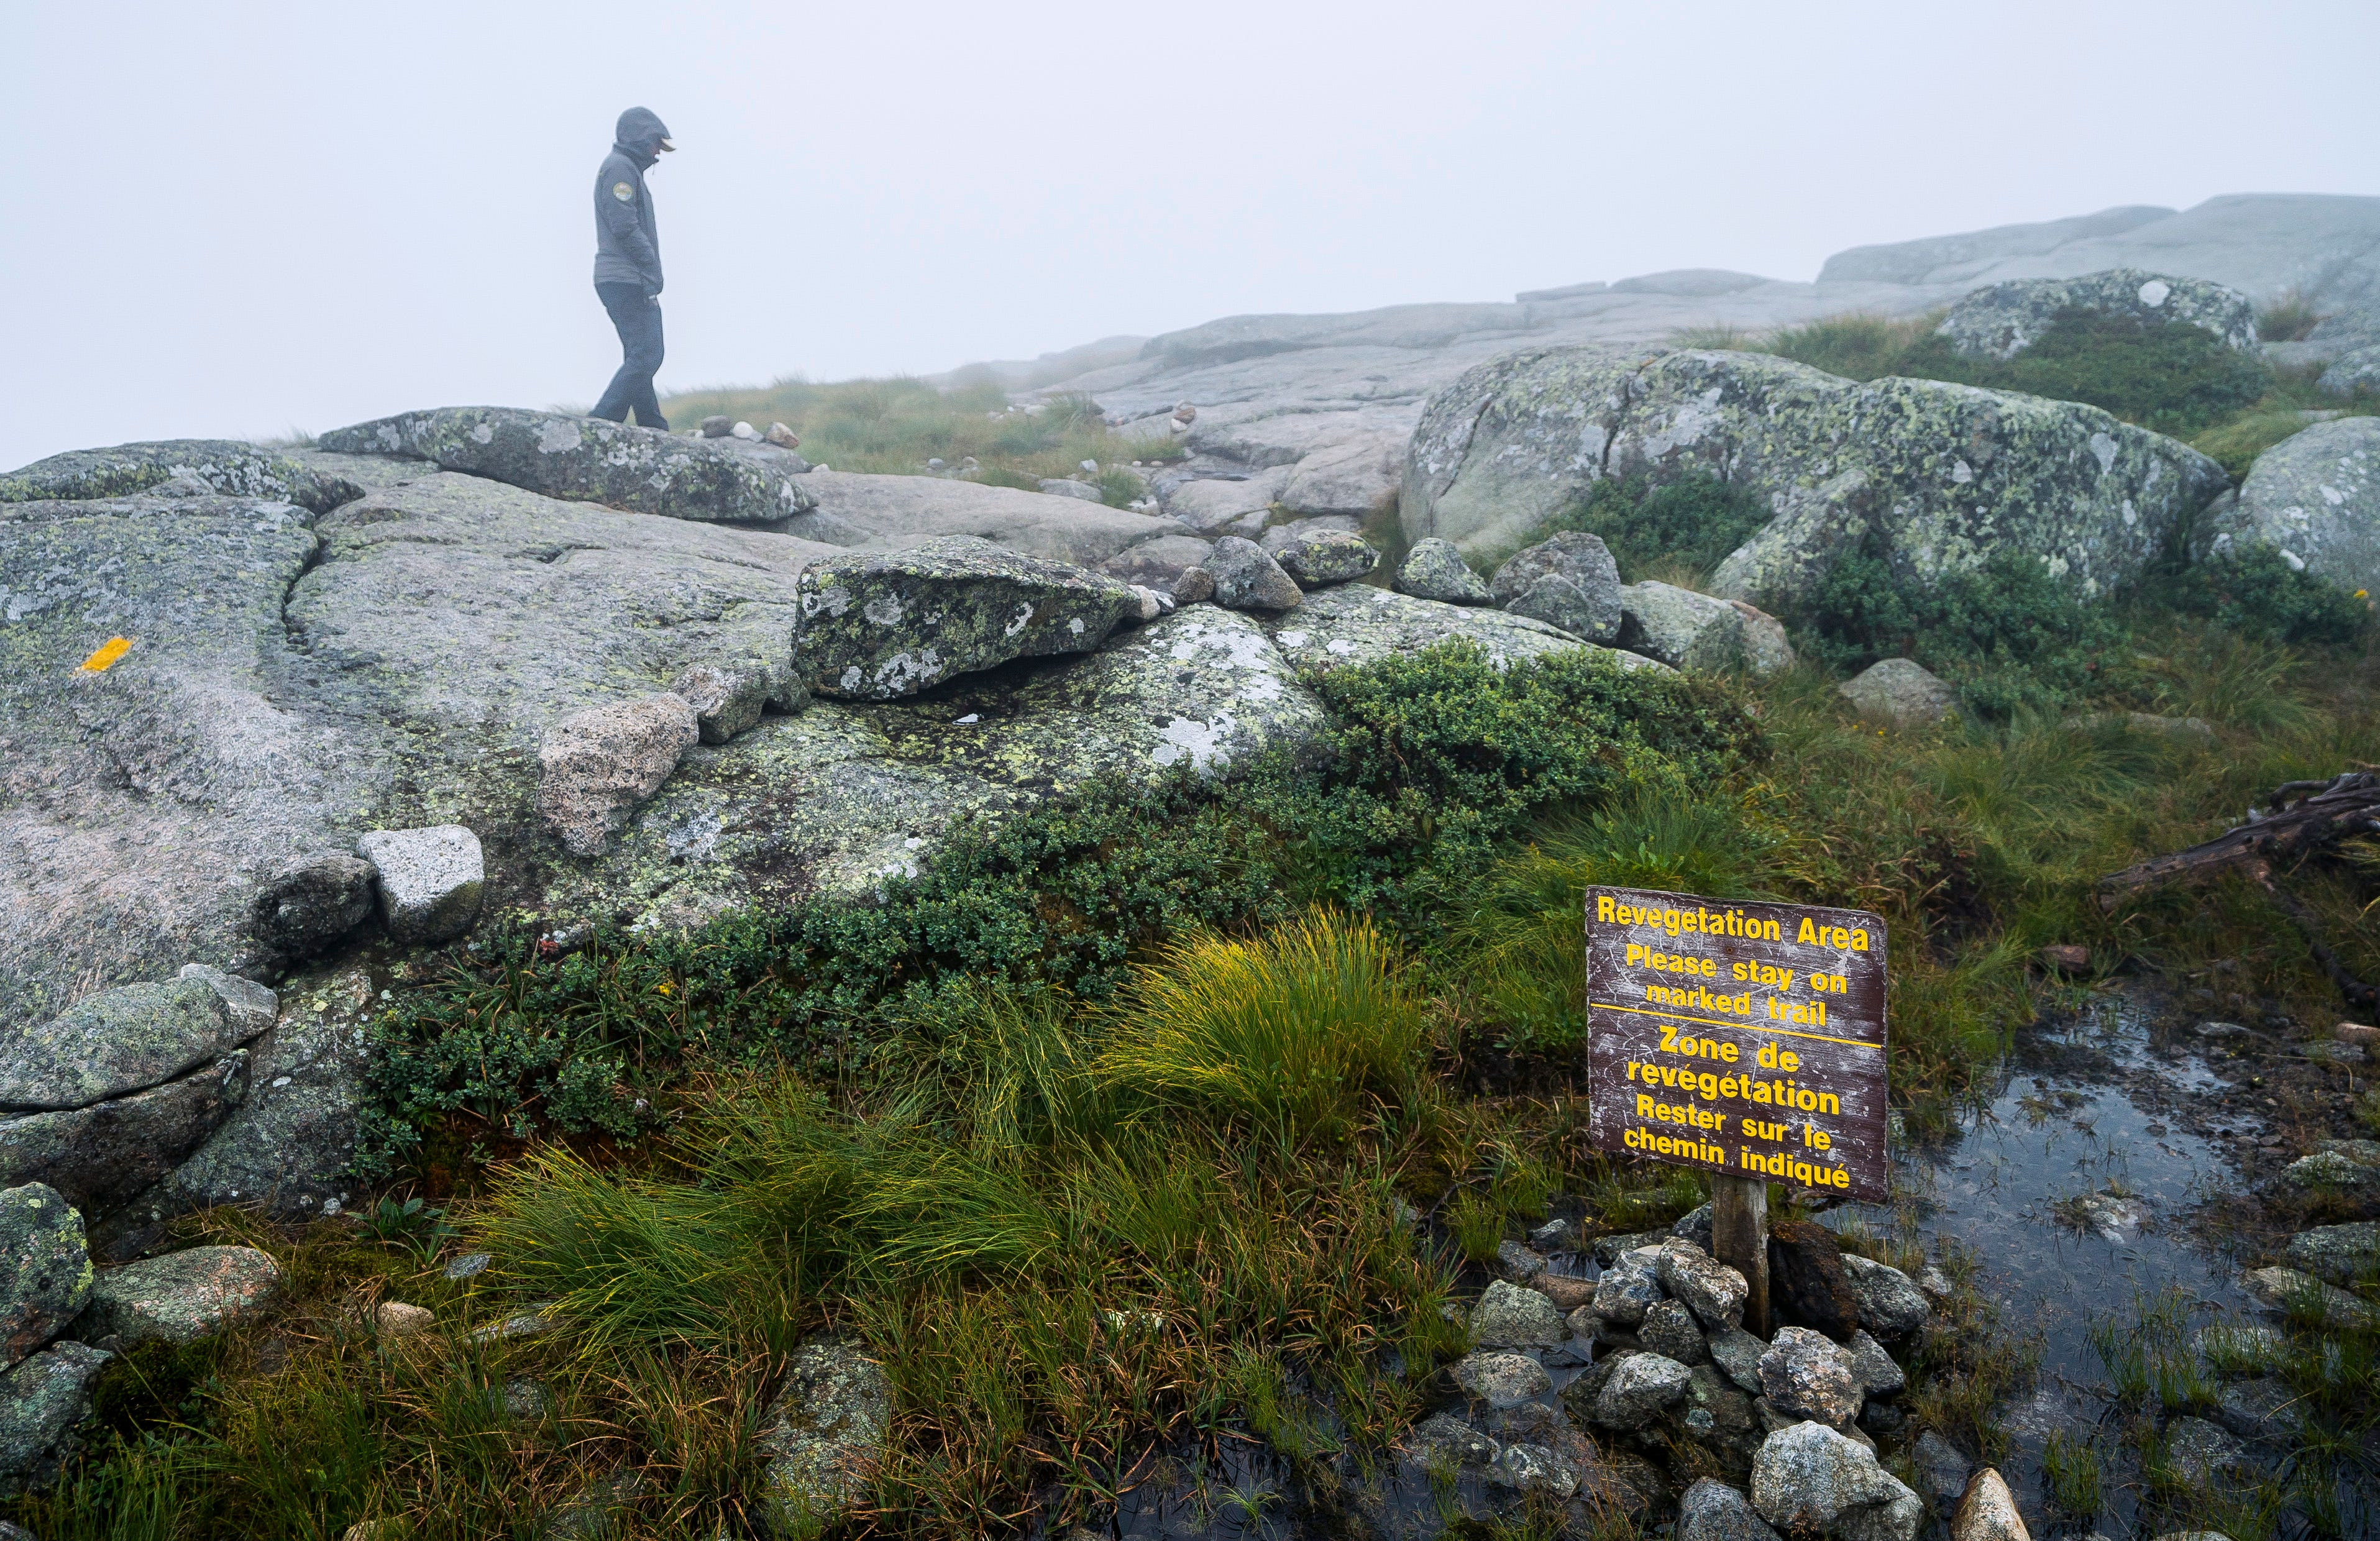 Summit Steward Michaela Dunn with the Adirondack Mountain Club watches over Algonquin Peak on Saturday, Aug. 10, 2019, quick to intercept hikers and educate them about staying on the rock and off the fragile Alpine plants and grasses as well as the gravel mineral pools, crucial for plant grown. Steward efforts at summits across the Adirondacks have saved plants that were disappearing from peaks decades ago.